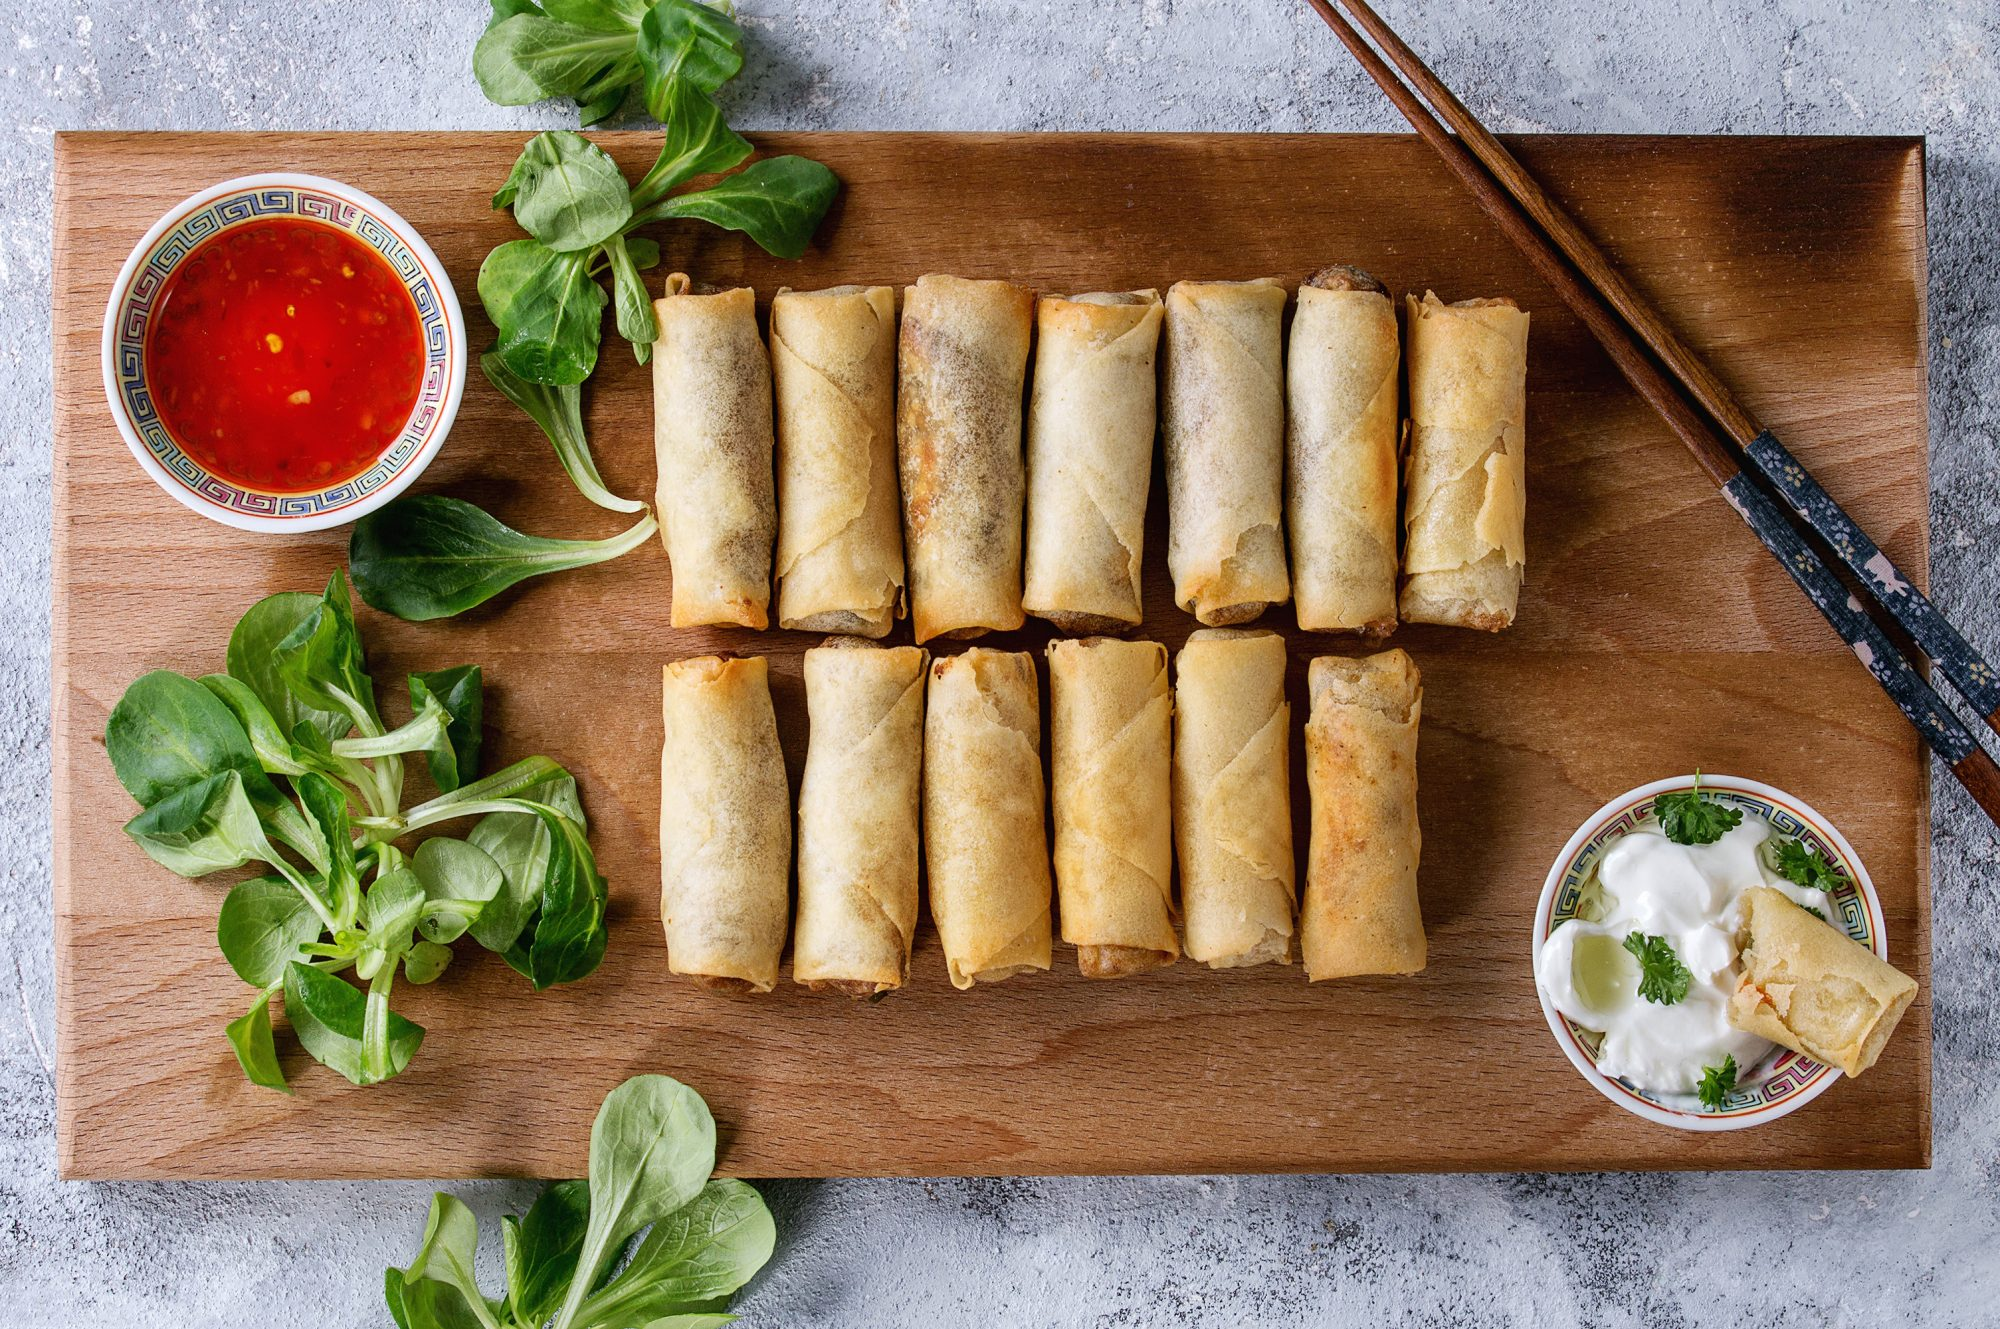 Fried spring rolls with red and white sauces, served on wood serving board with fresh green salad and wooden chopsticks over gray blue texture background. Flat lay, space. Asian food. (Photo by: Natasha Breen/REDA&CO/Universal Images Group via Getty Images)